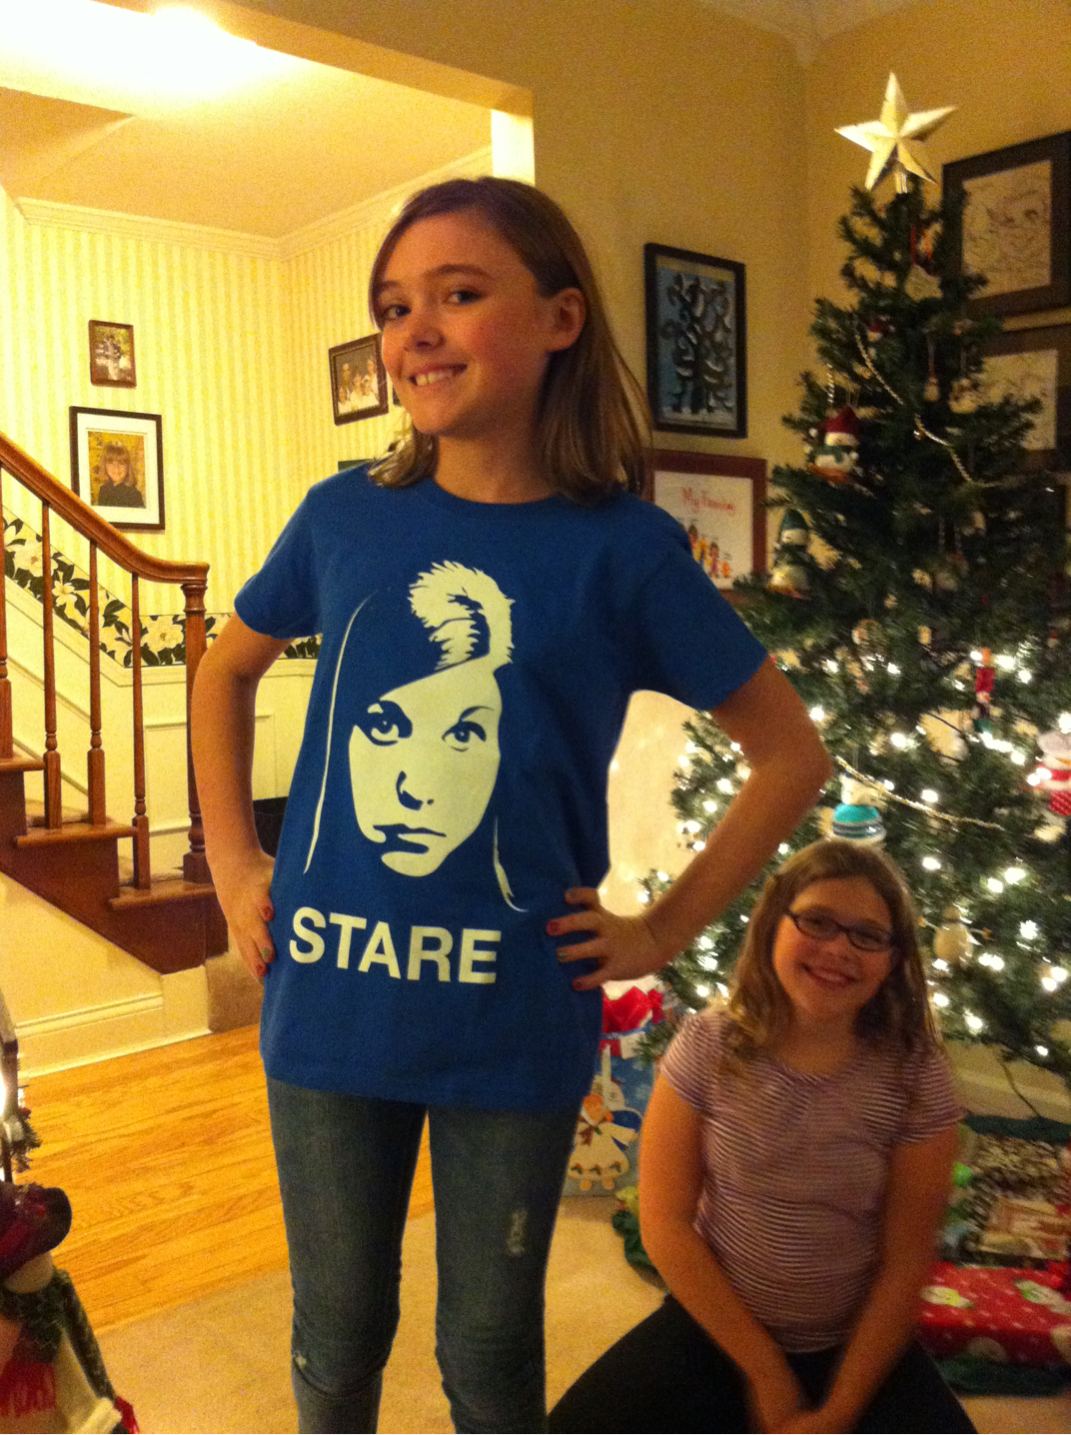 wwyg: Sarah raises her Nerdfighter cred a bit higher. It's the fact that this photo is taken IN FRONT OF A CHRISTMAS TREE that really wins me over.